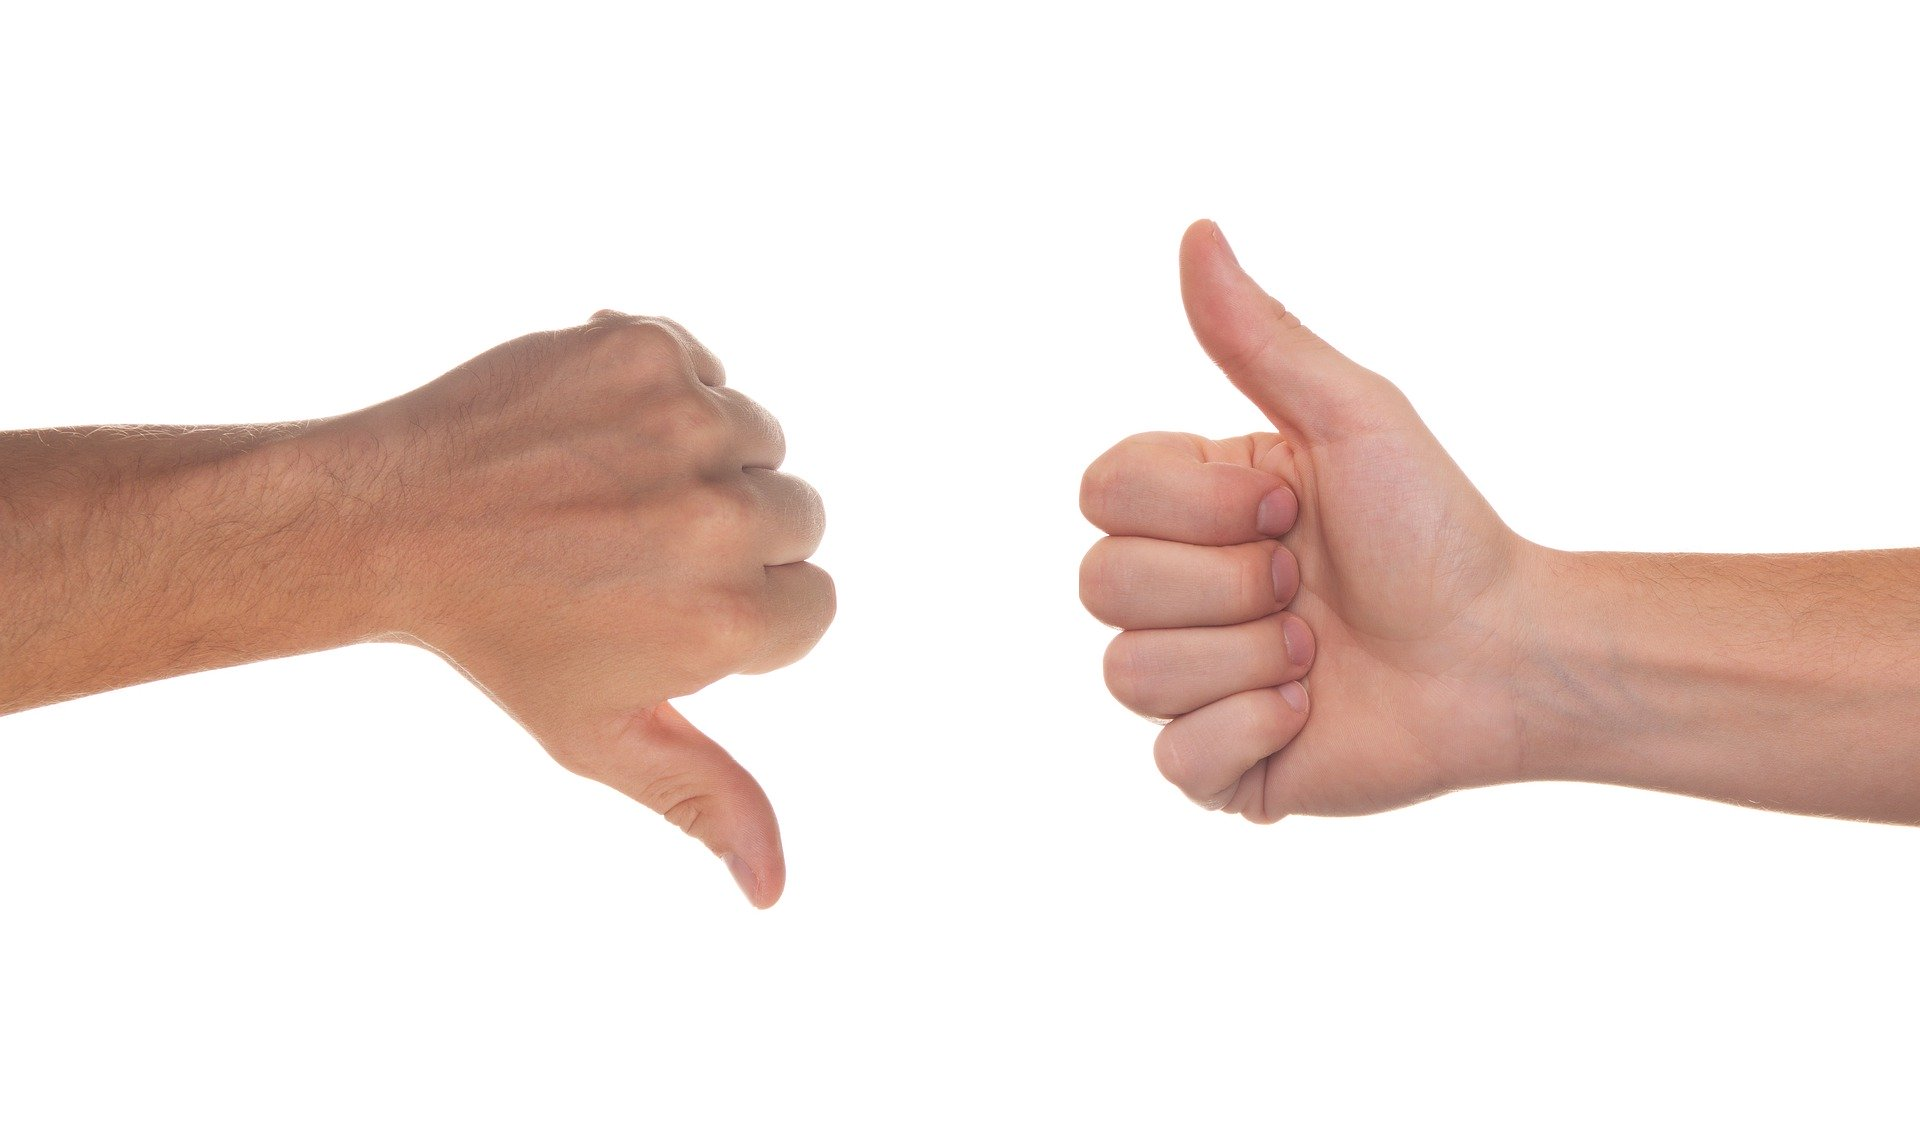 Thumbs up and thumbs down